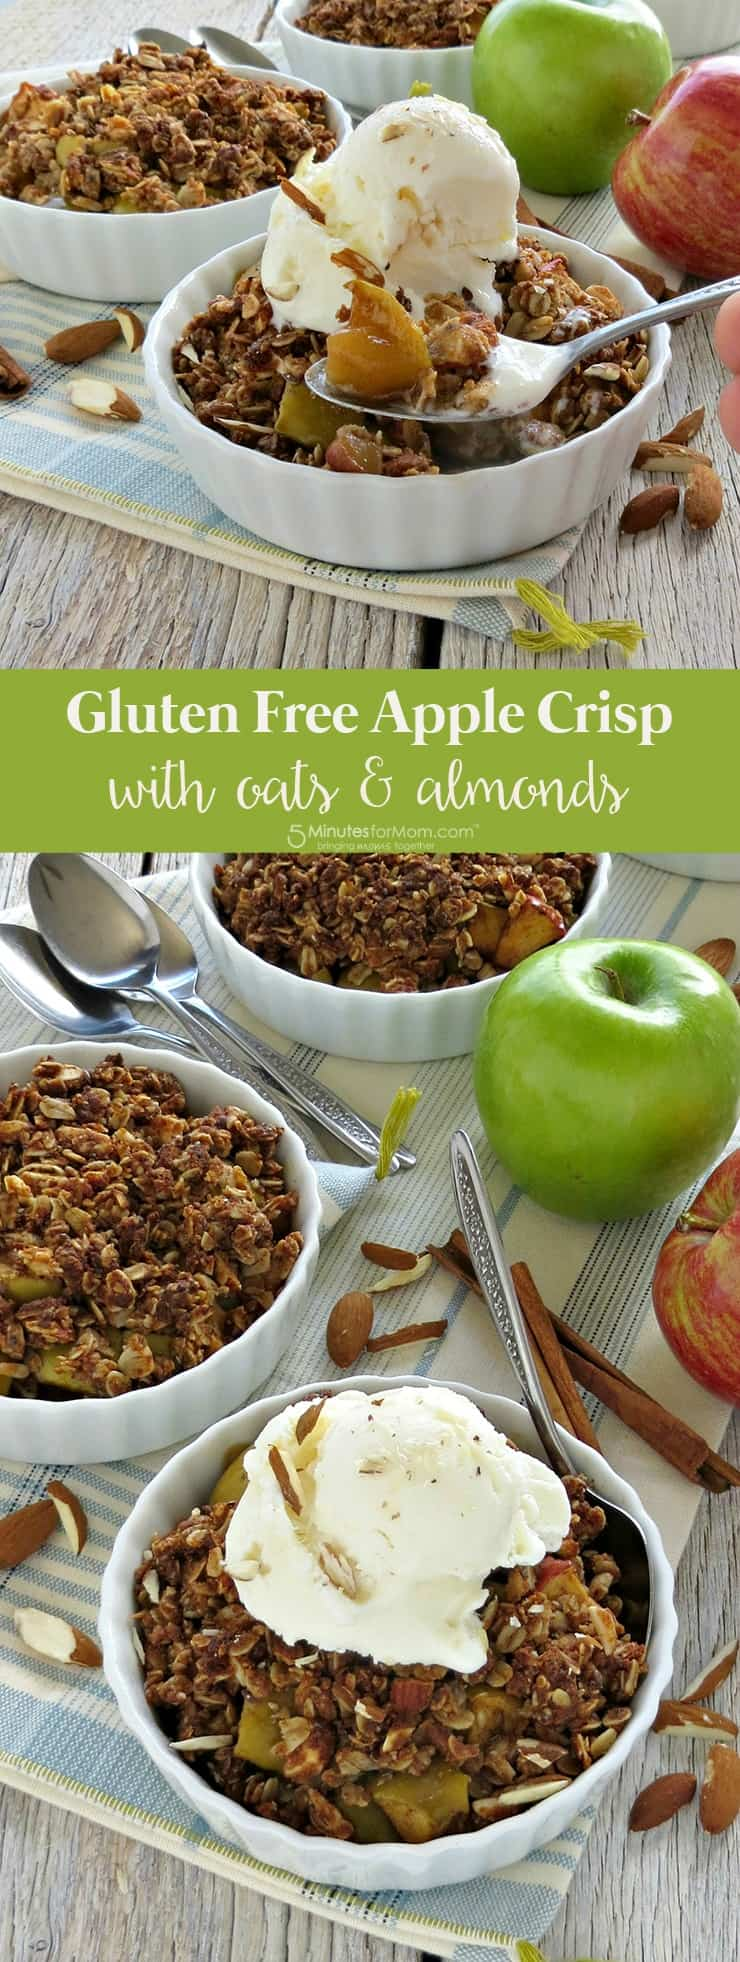 Gluten free apple crisp with oats and almonds recipe